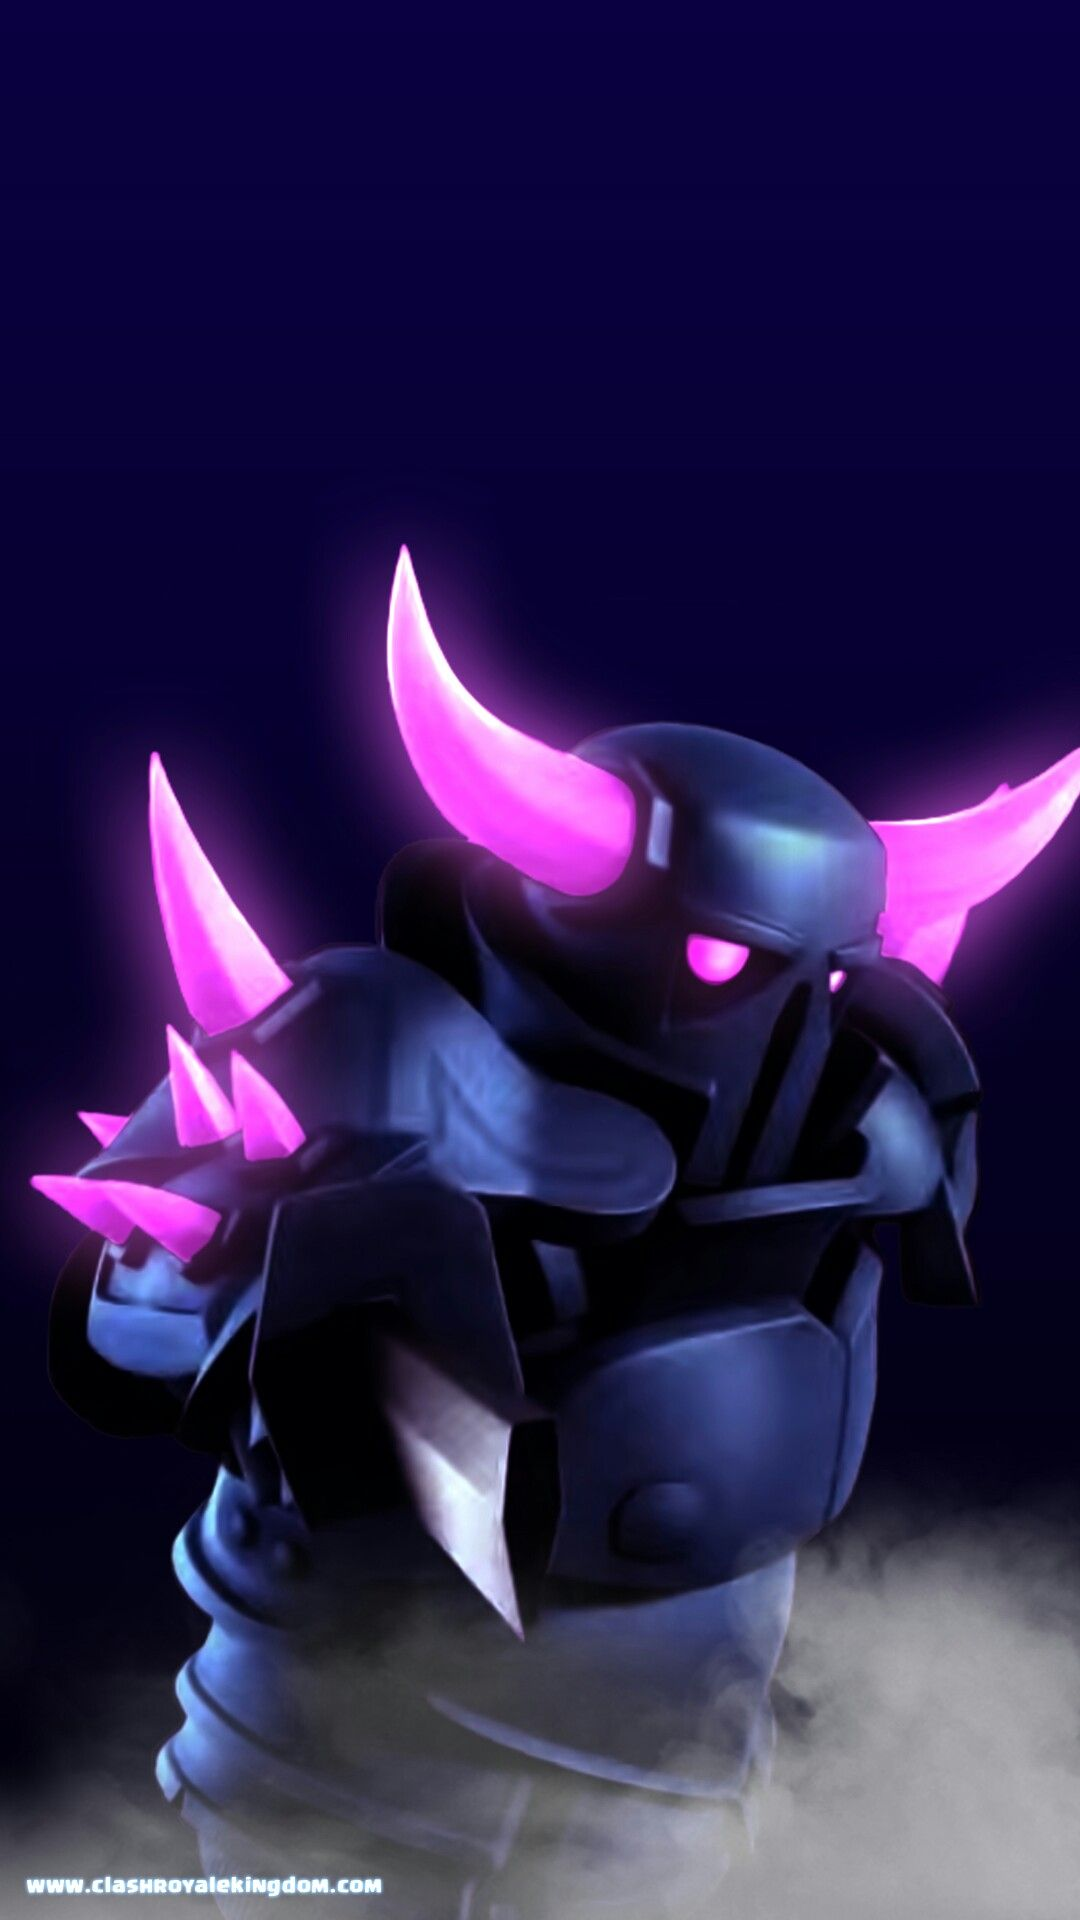 Pekka Pose Supercell Hd Wallpaper Clash Royale Clash Of Clans